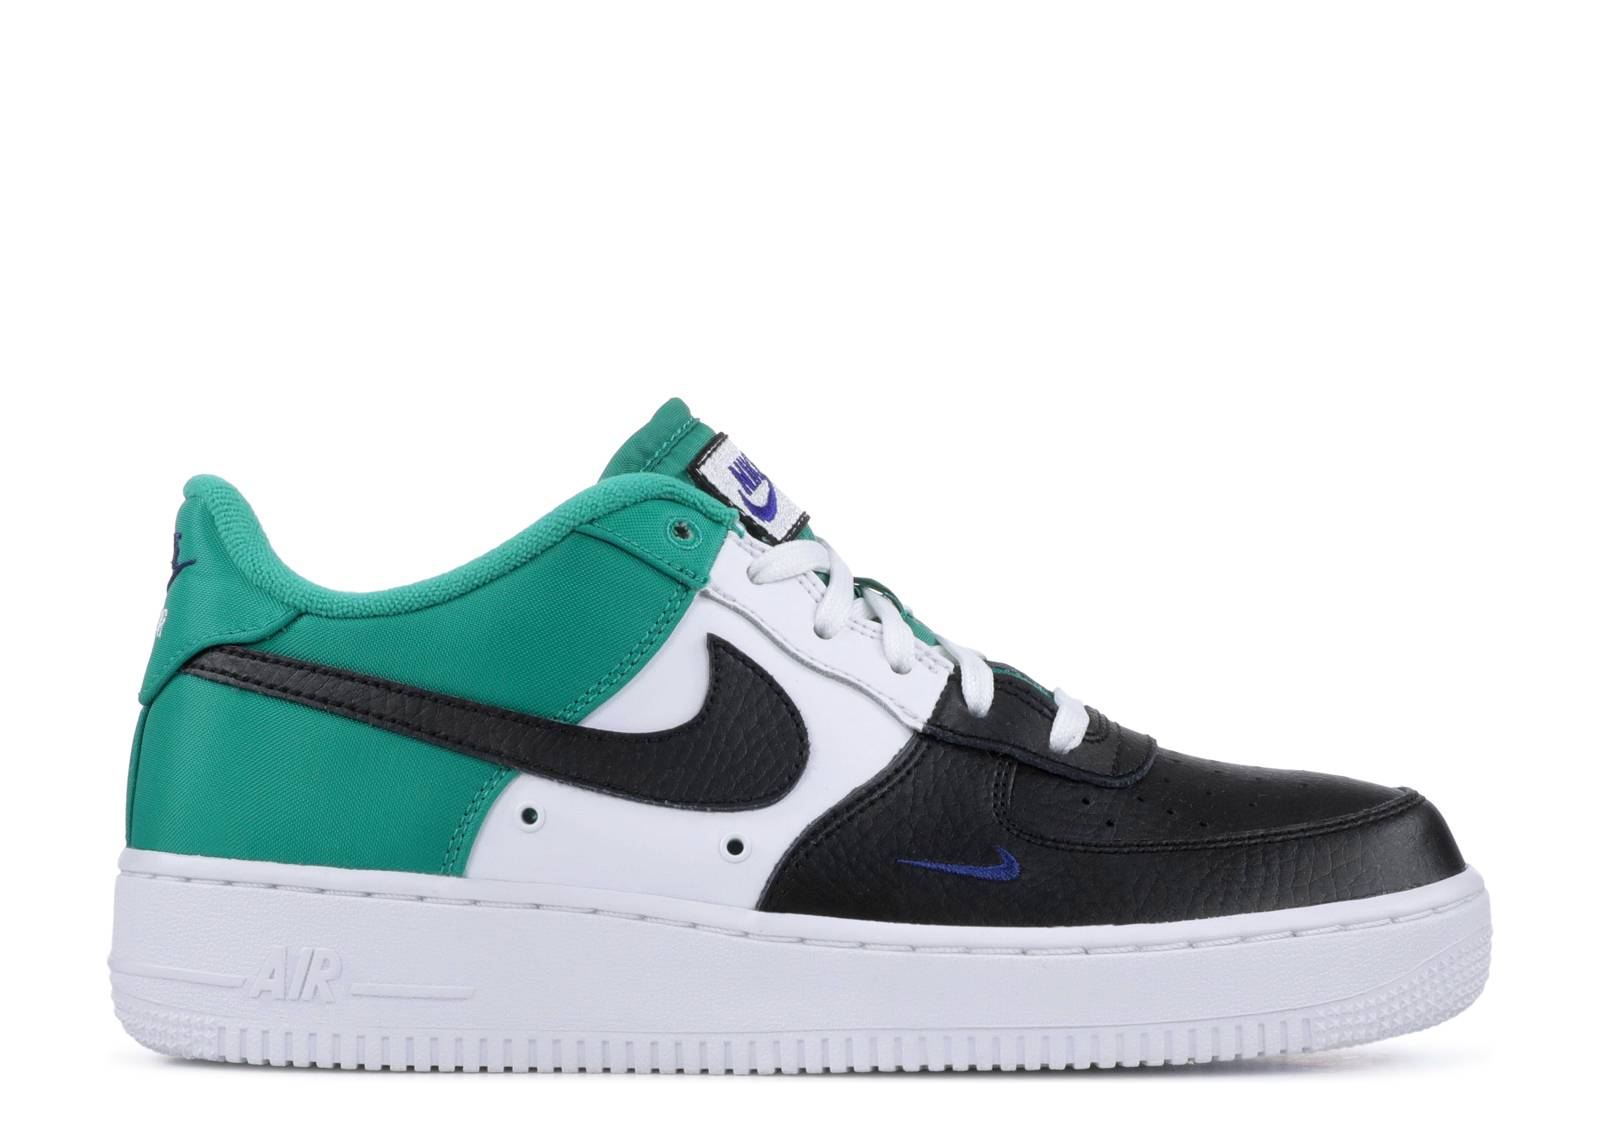 air force 1 lv 8 (gs)